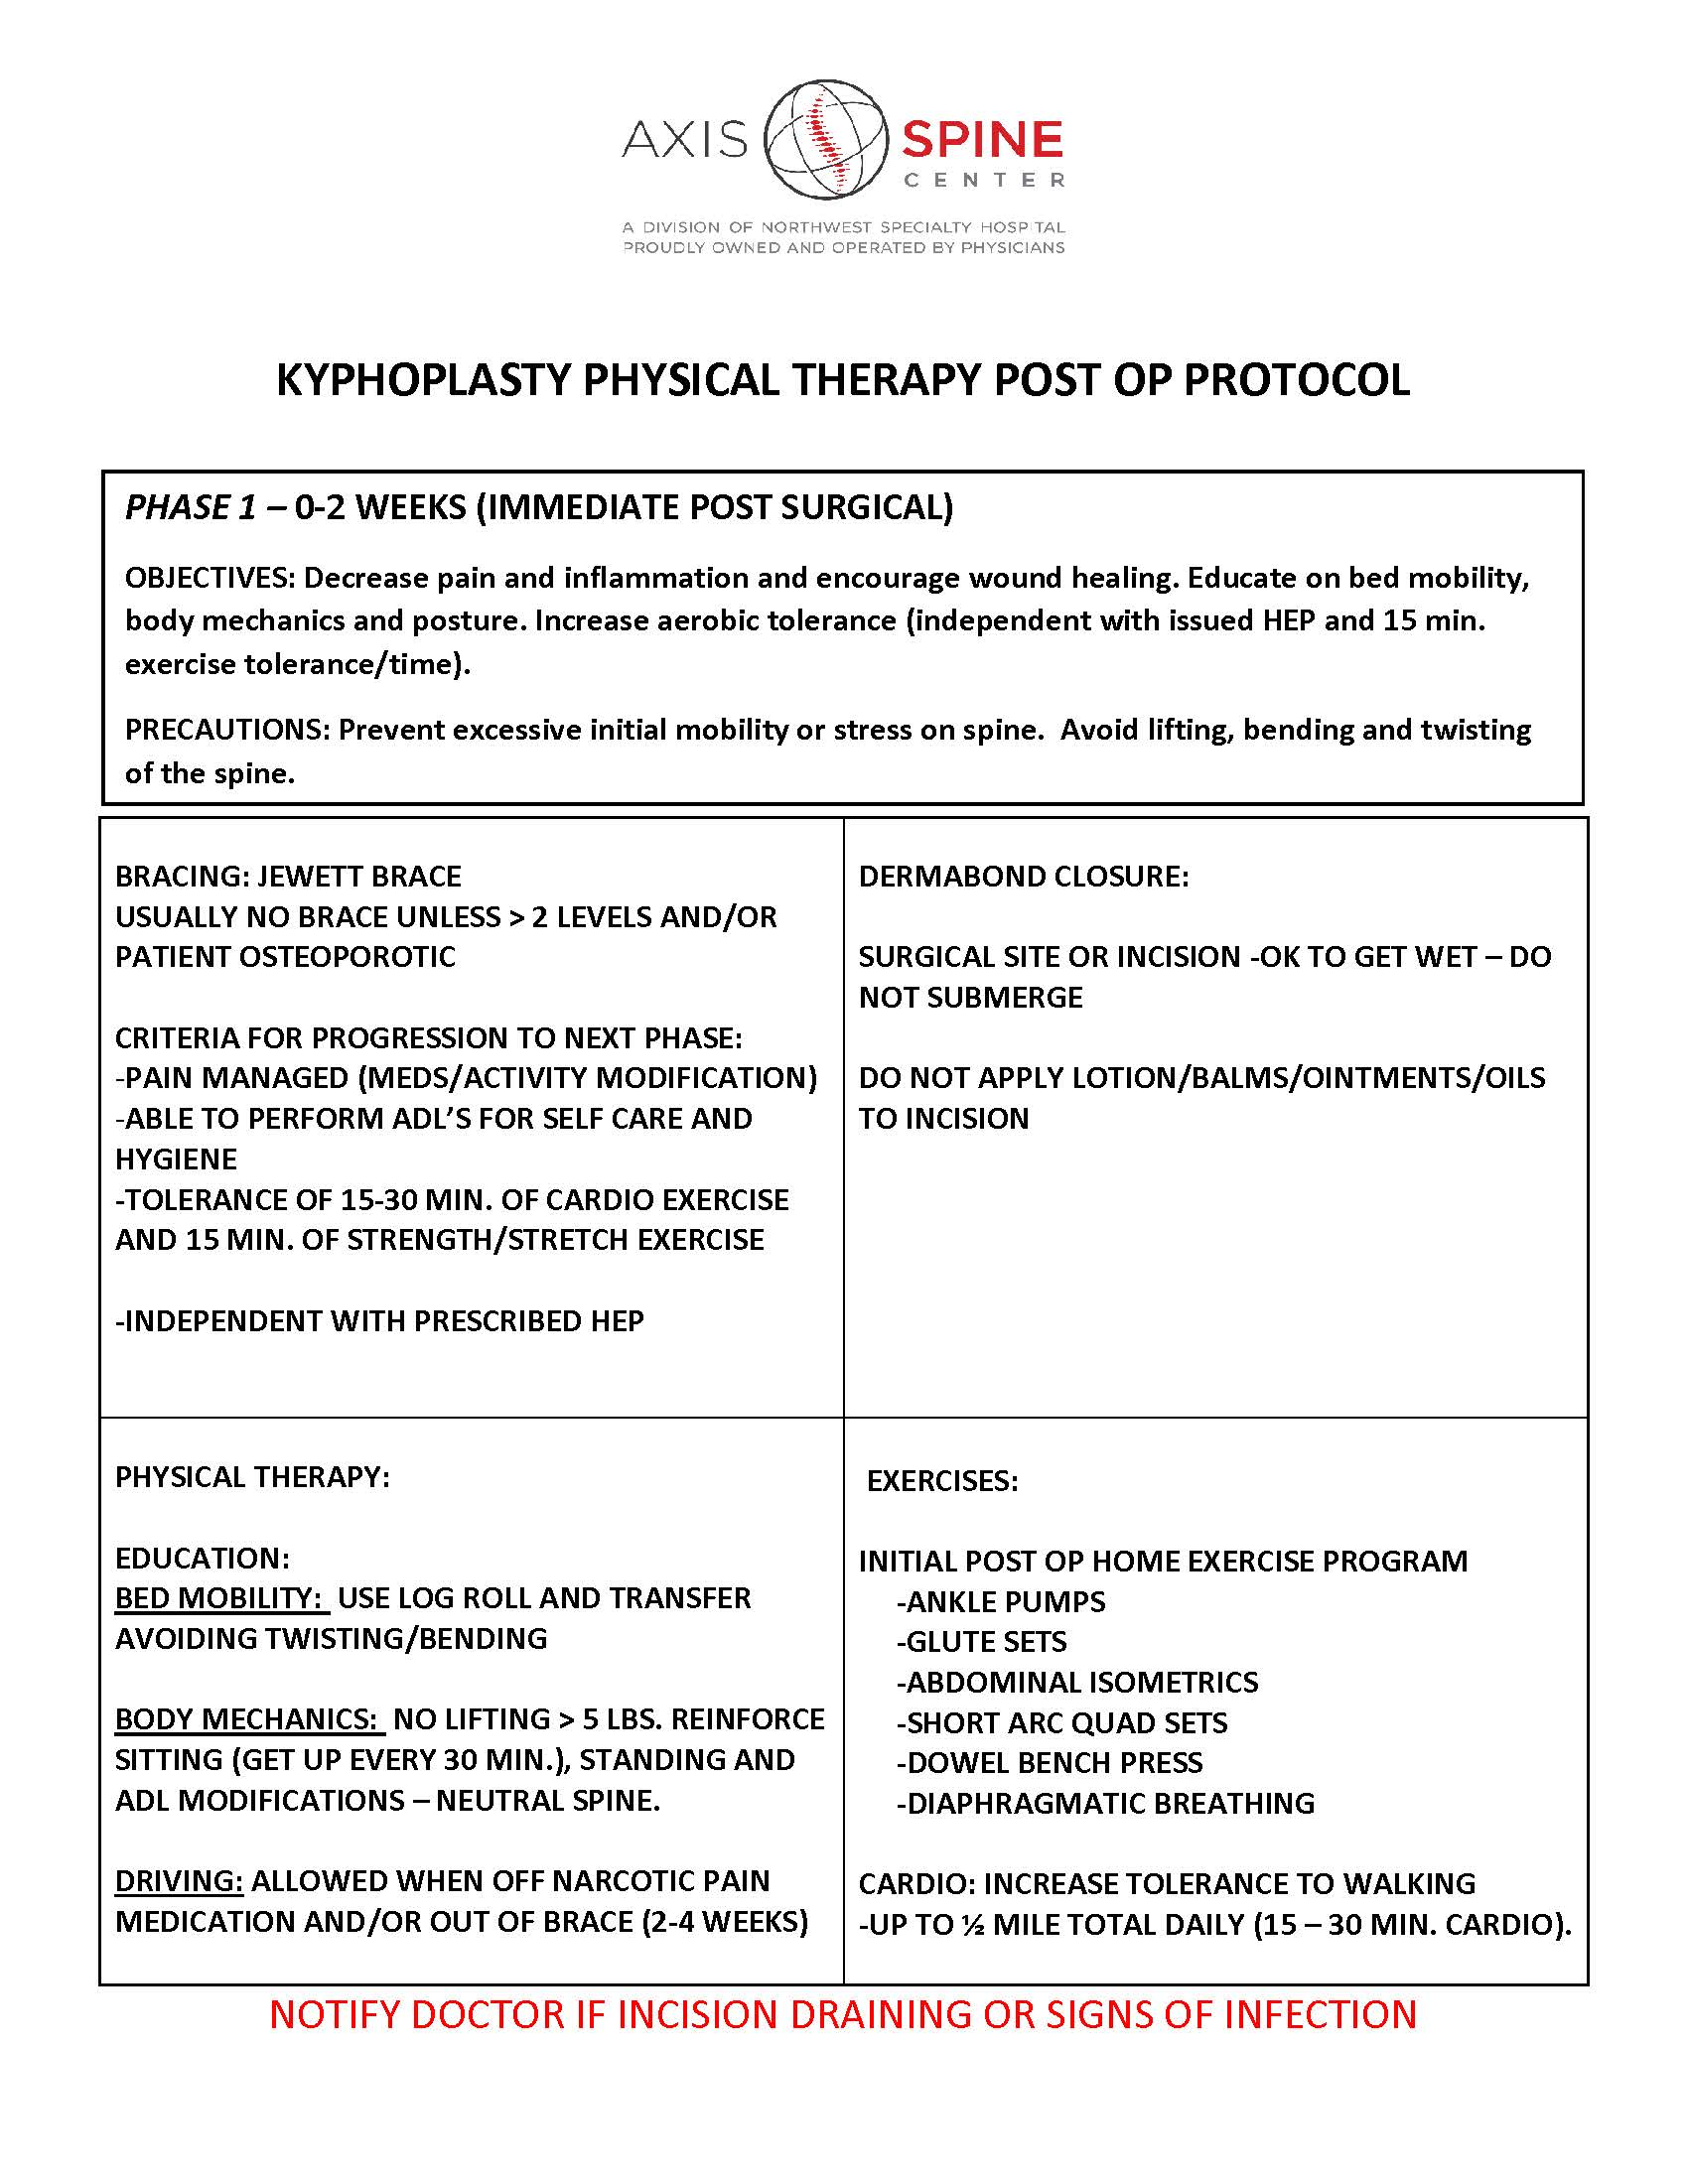 KYPHOPLASTY PHYSICAL THERAPY POST OP PROTOCOL